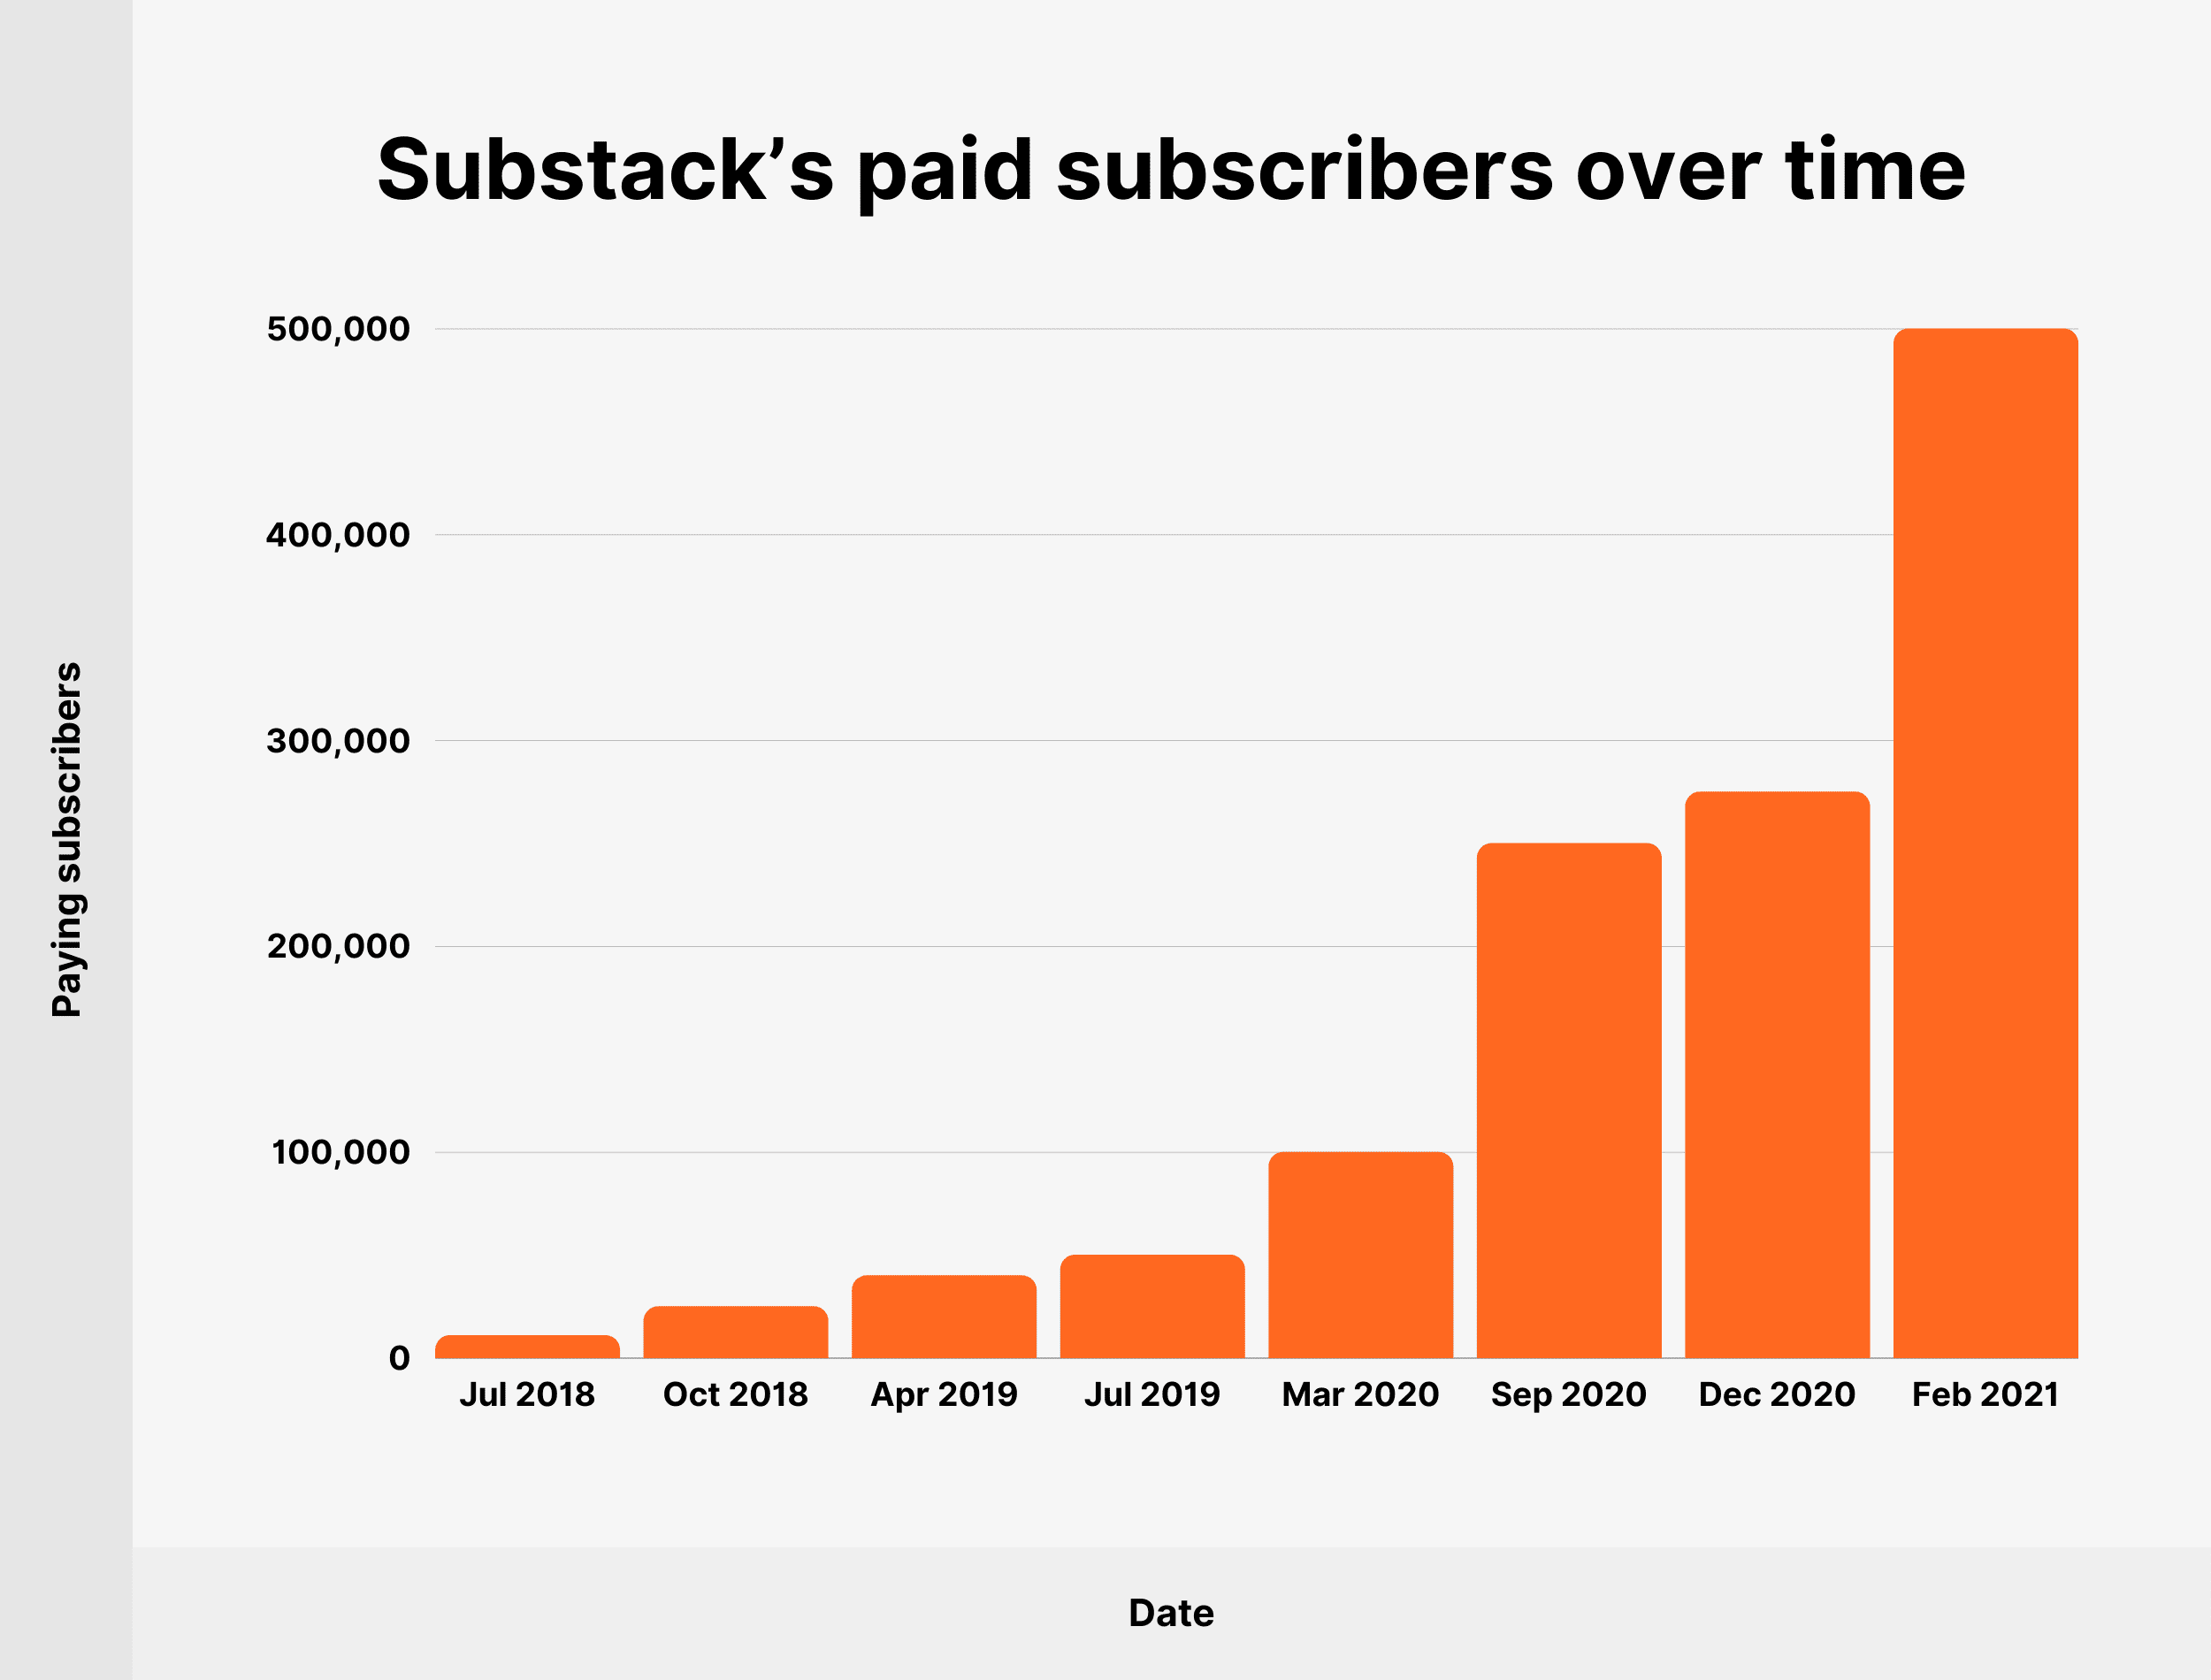 Substack's paid subscribers over time